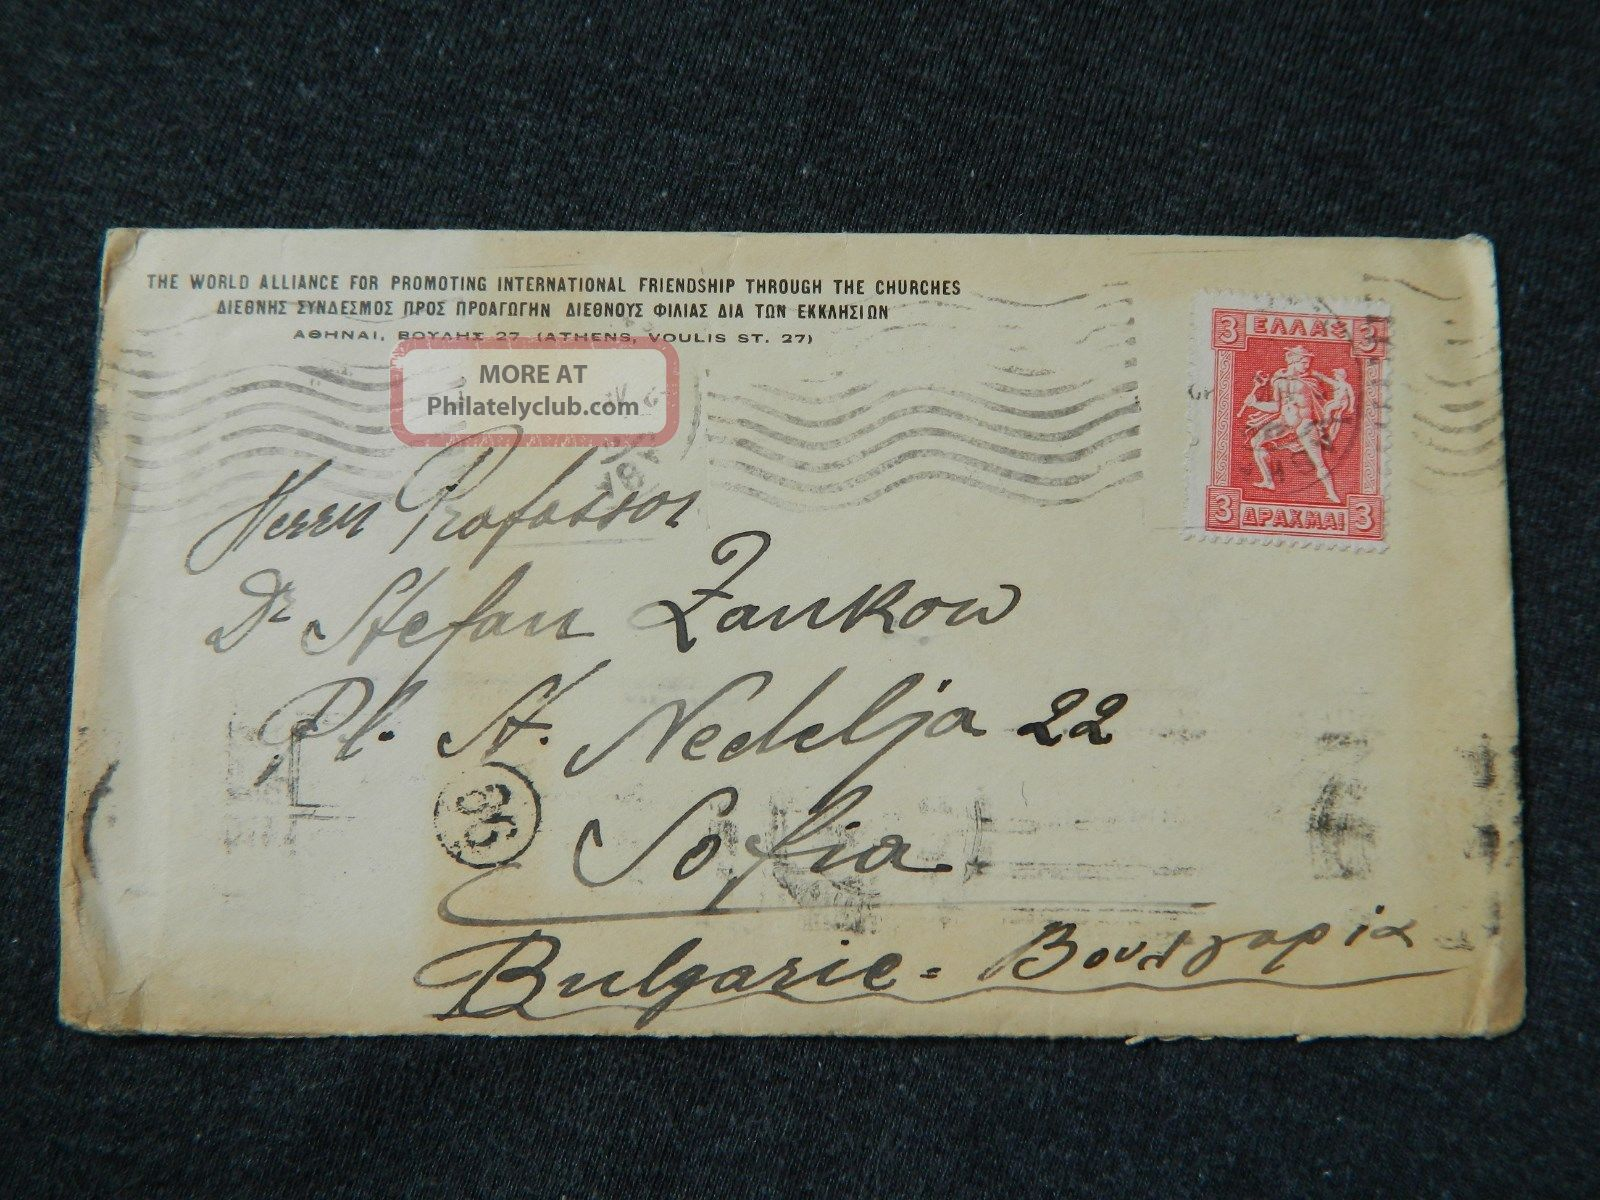 Greece Griechenland To Bulgaria Airmail Cover 1926 Worldwide photo